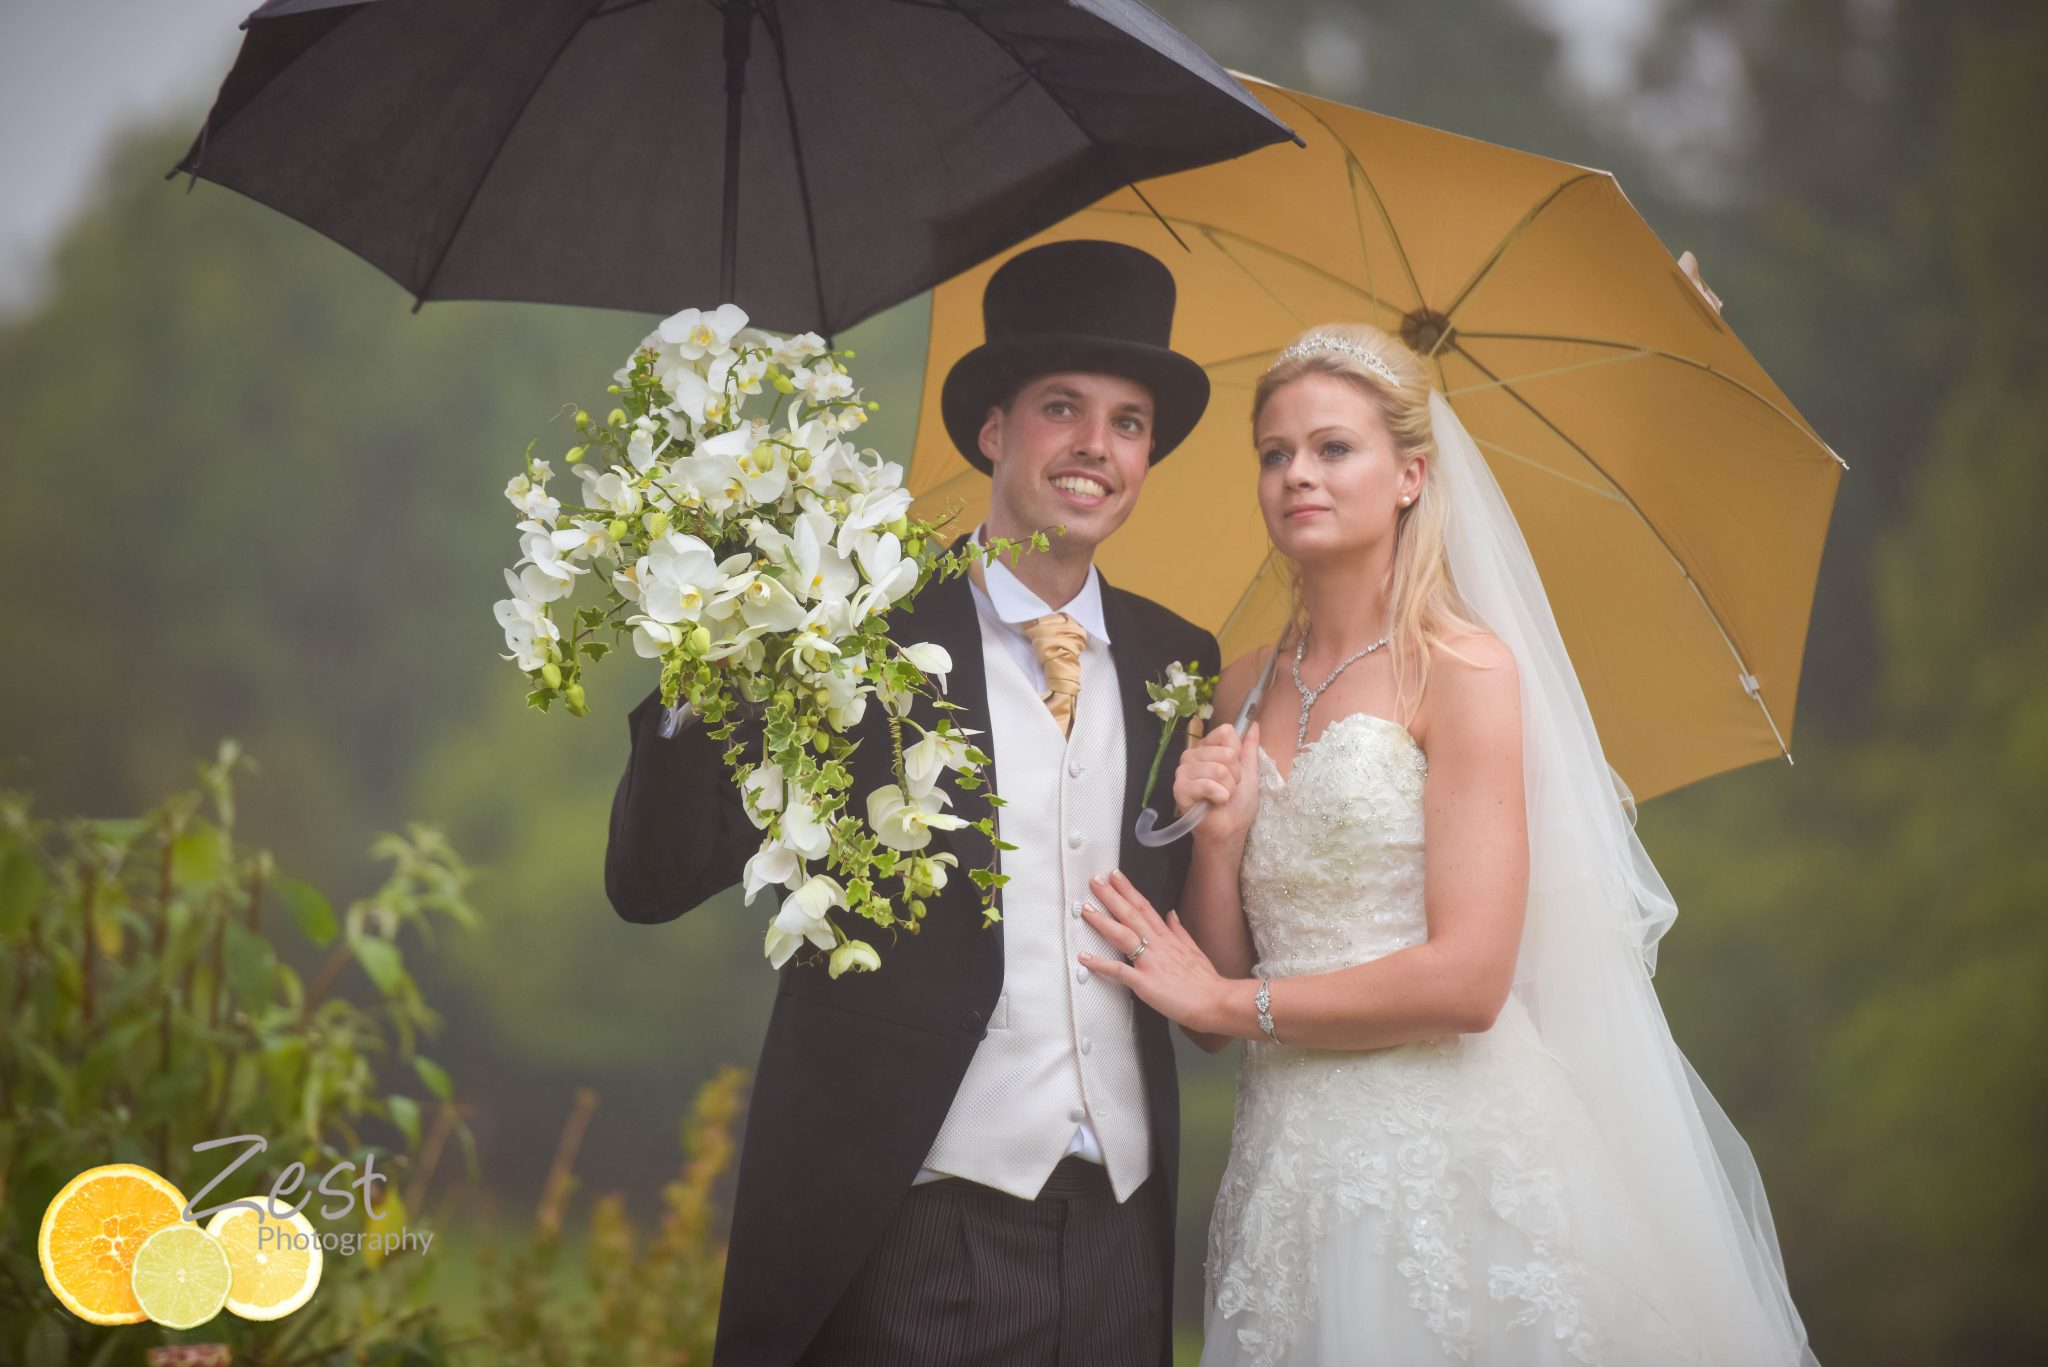 wet wedding at ockenden manor